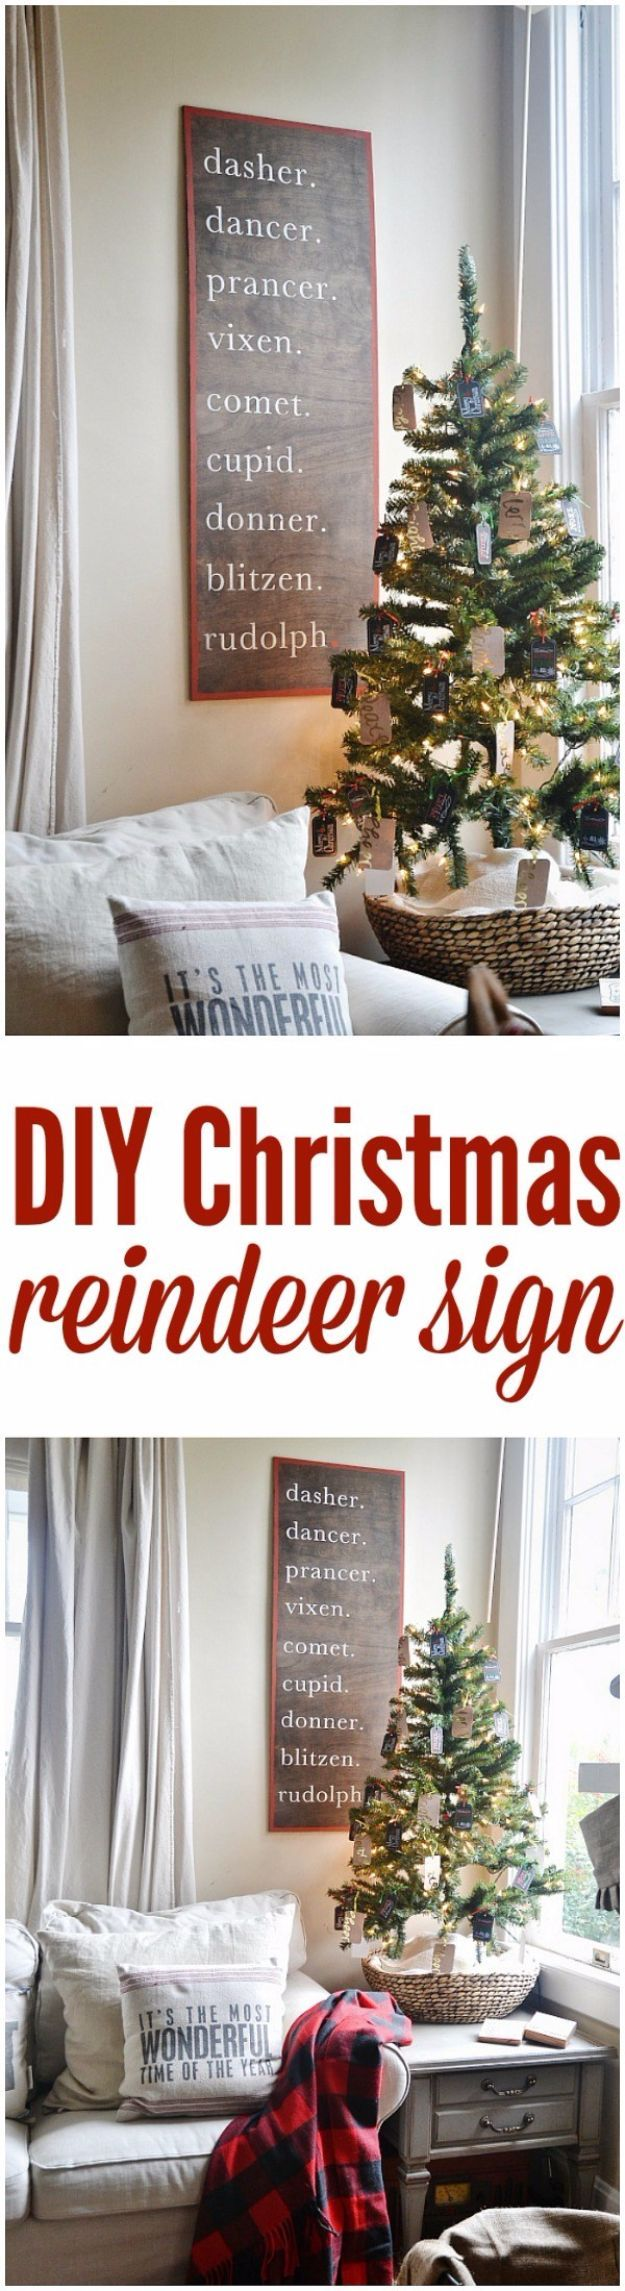 Cheap DIY Christmas Decor Ideas and Holiday Decorating On A Budget - Christmas Reindeer Sign - Easy and Quick Decorating Ideas for The Holidays - Cool Dollar Store Crafts for Xmas Decorating On A Budget - wreaths, ornaments, bows, mantel decor, front door, tree and table centerpieces - best ideas for beautiful home decor during the holidays http://diyjoy.com/cheap-diy-christmas-decor